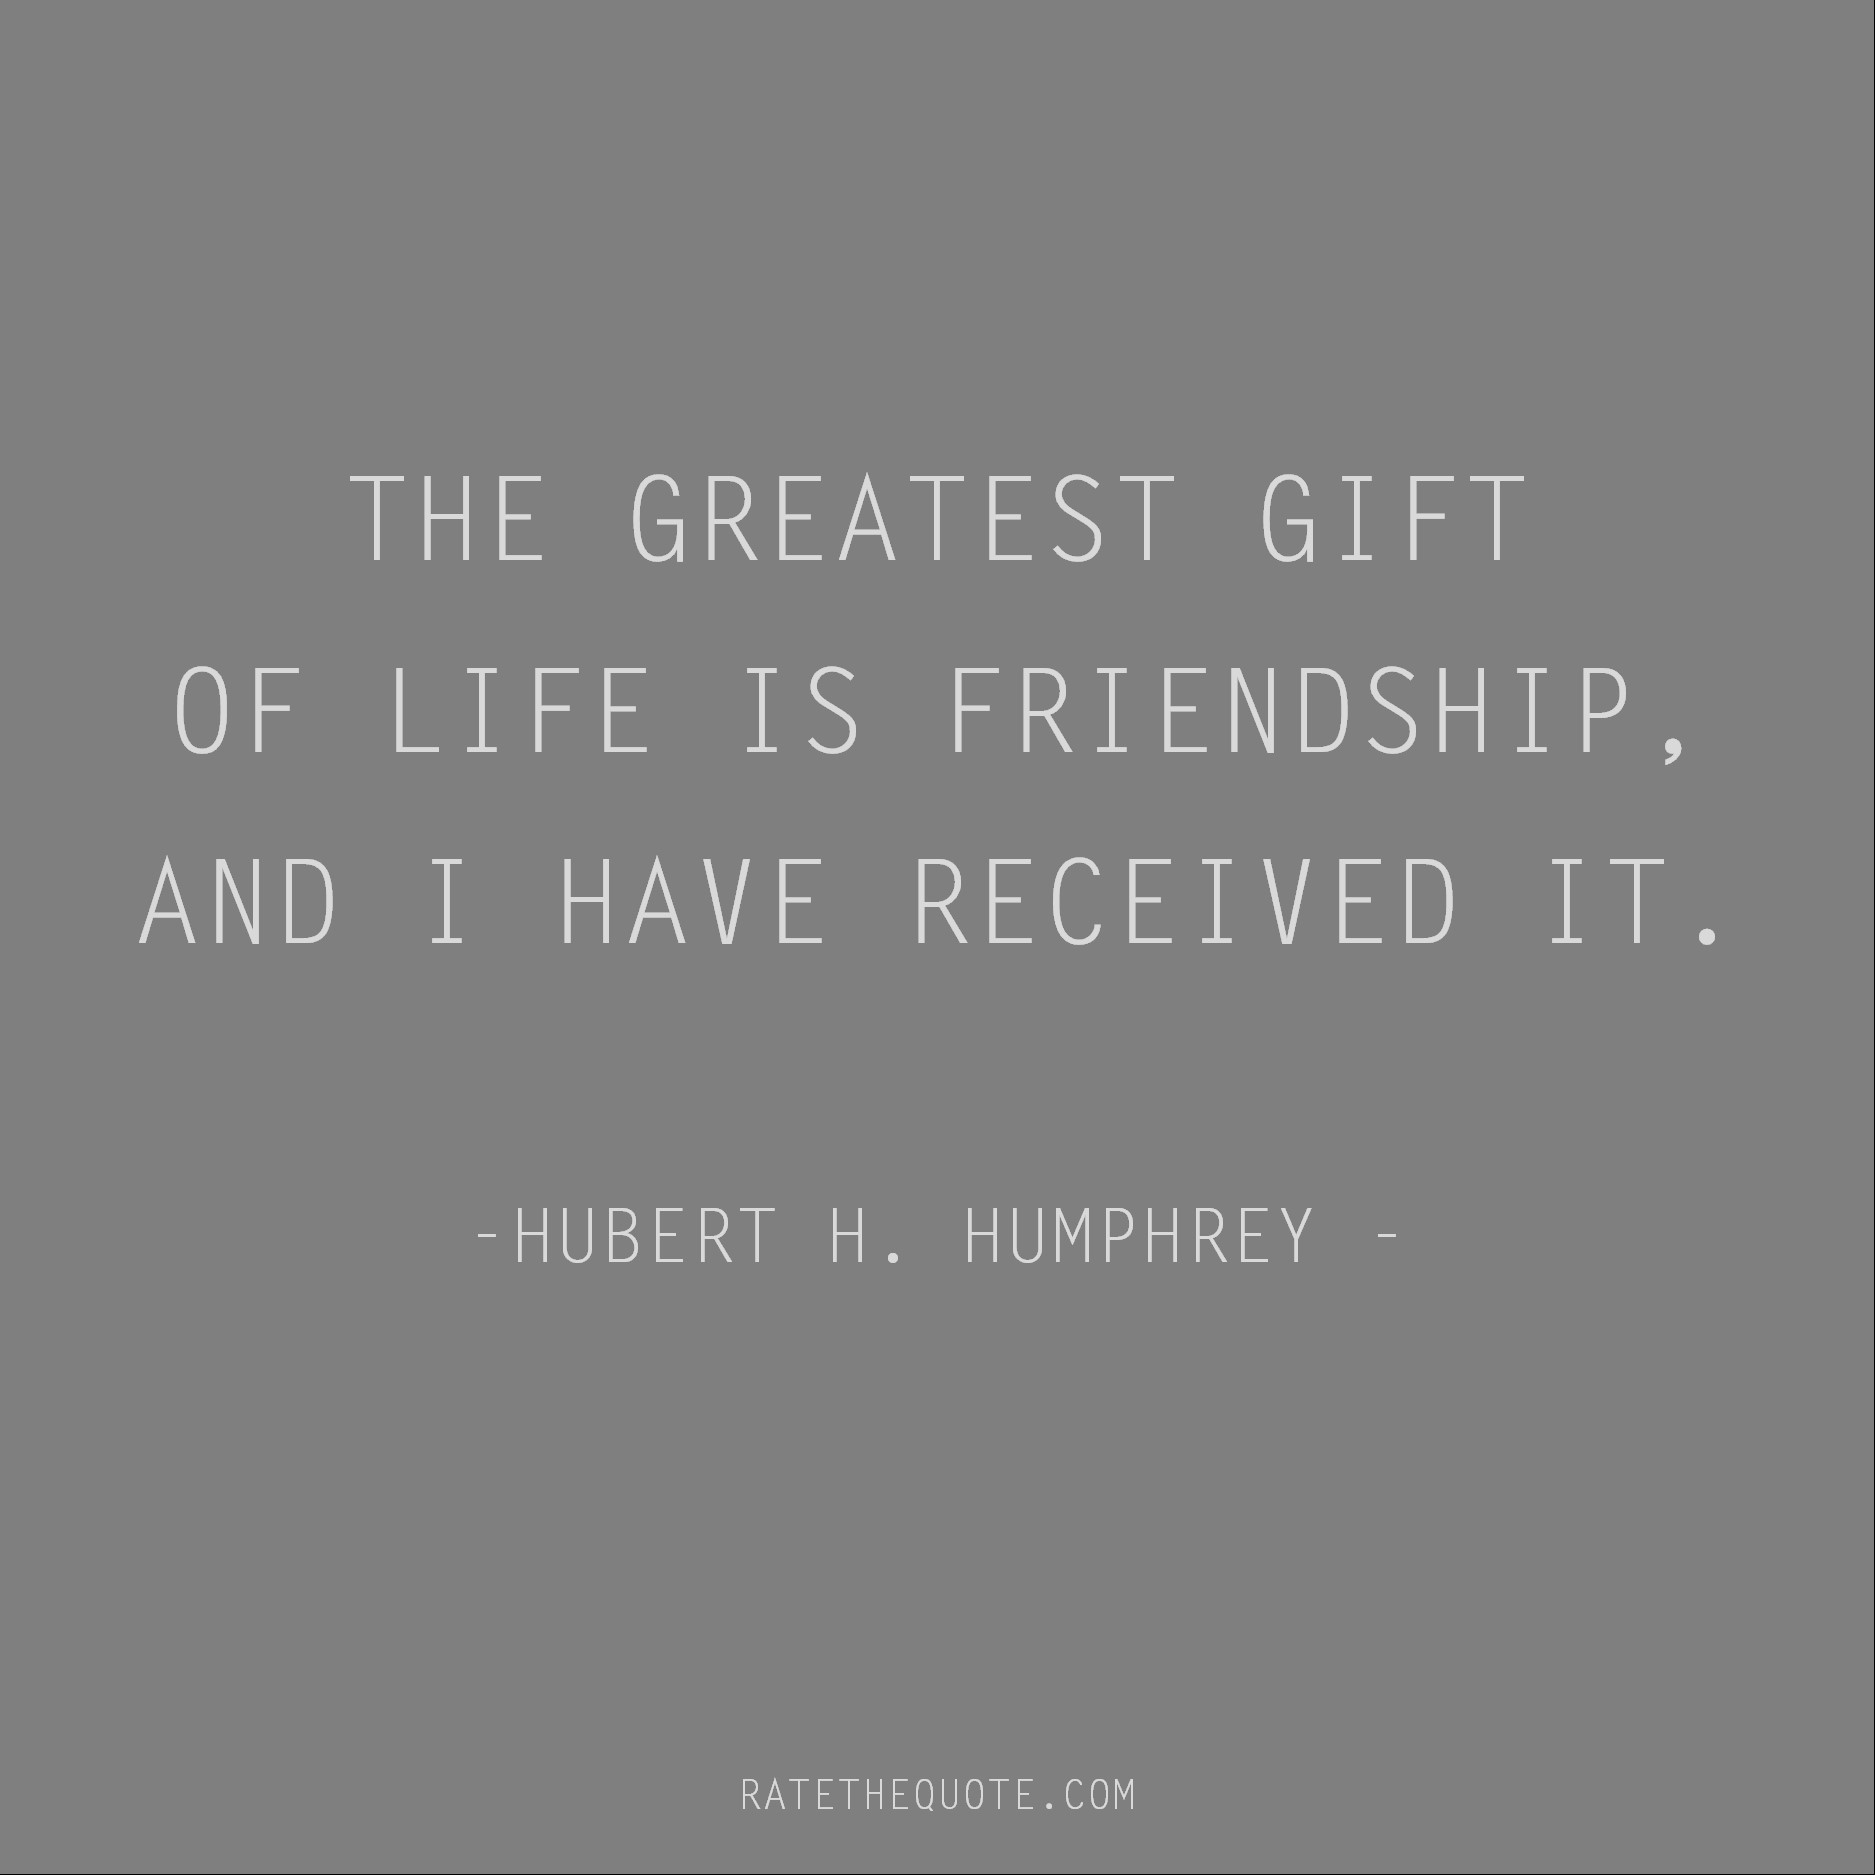 Friendship Quotes The greatest gift of life is friendship, and I have received it. Hubert H. Humphrey